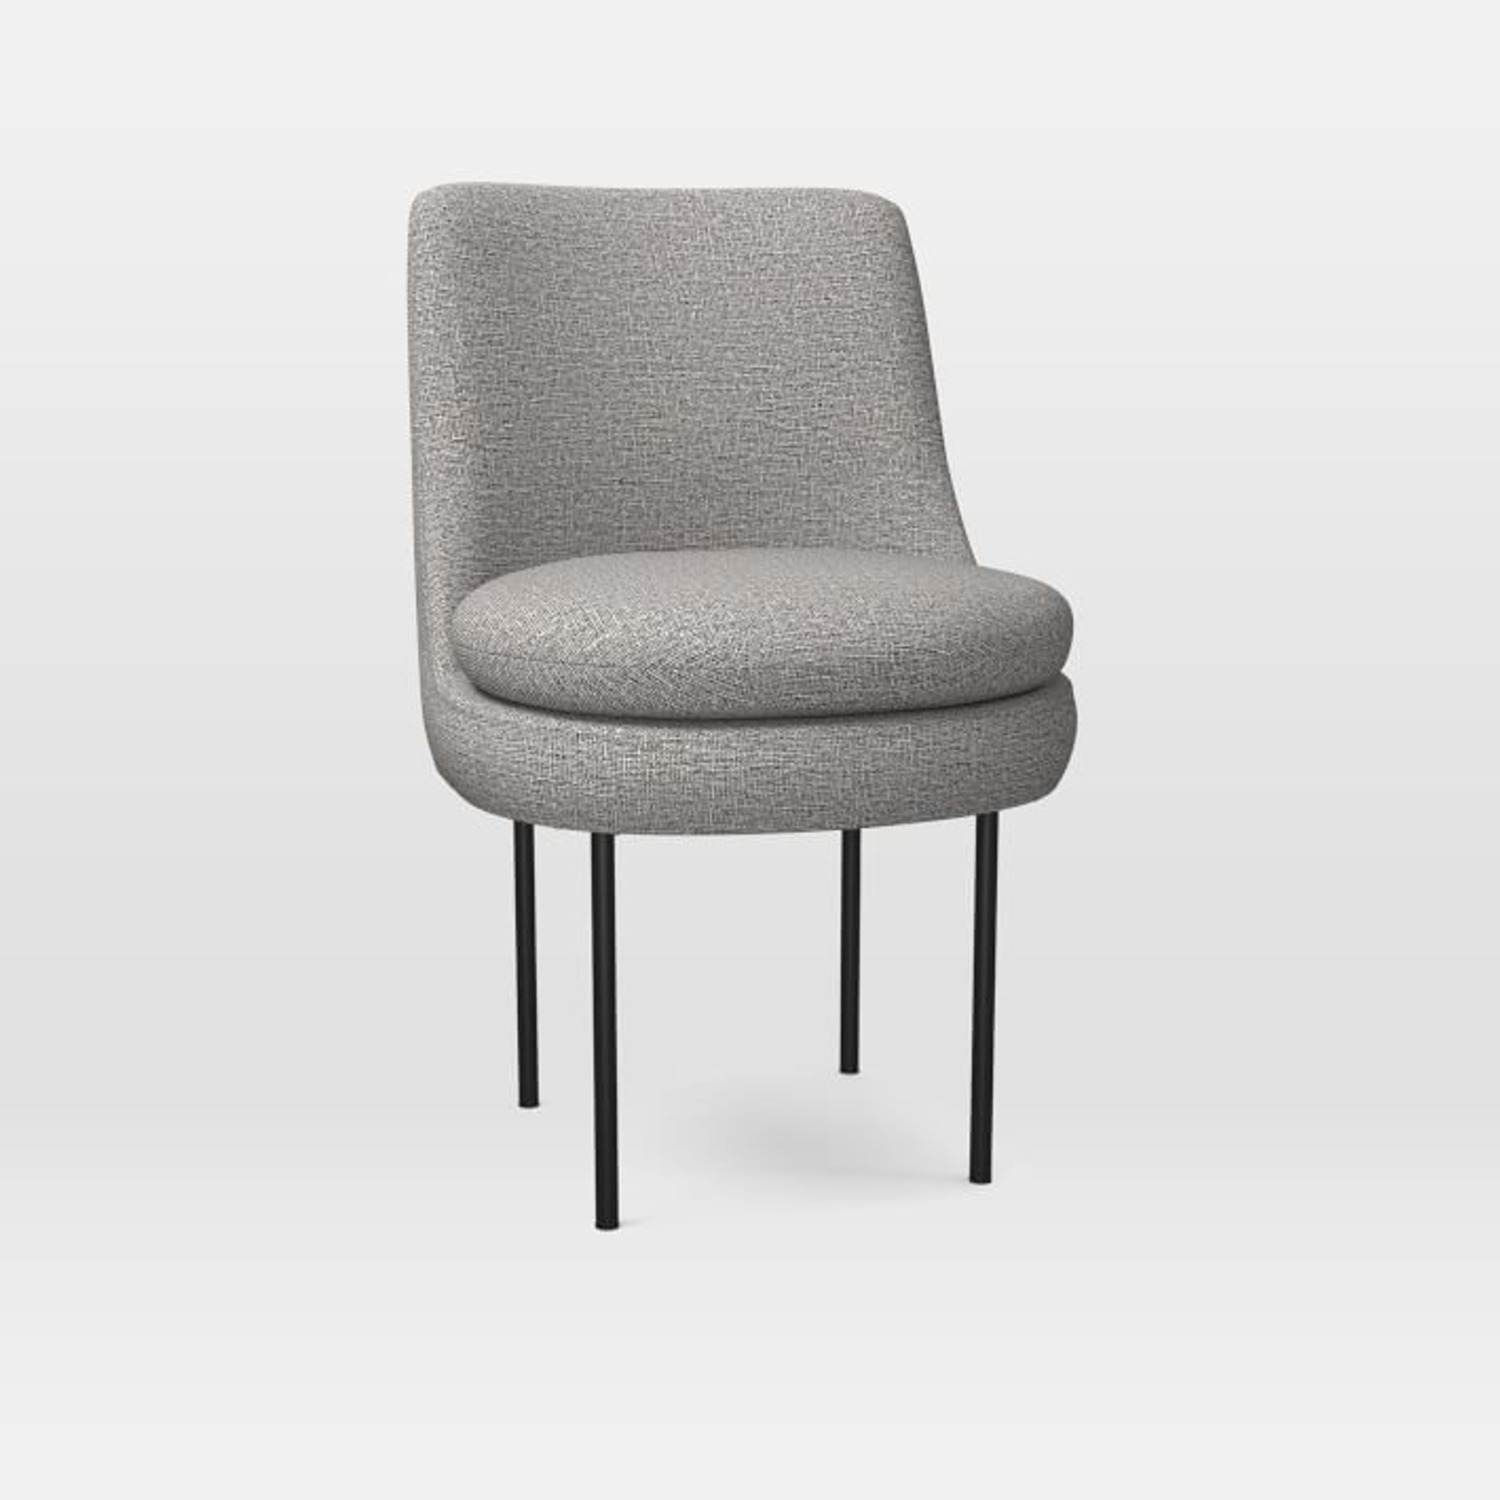 West Elm Modern Curved Upholstered Dining Chair - image-3